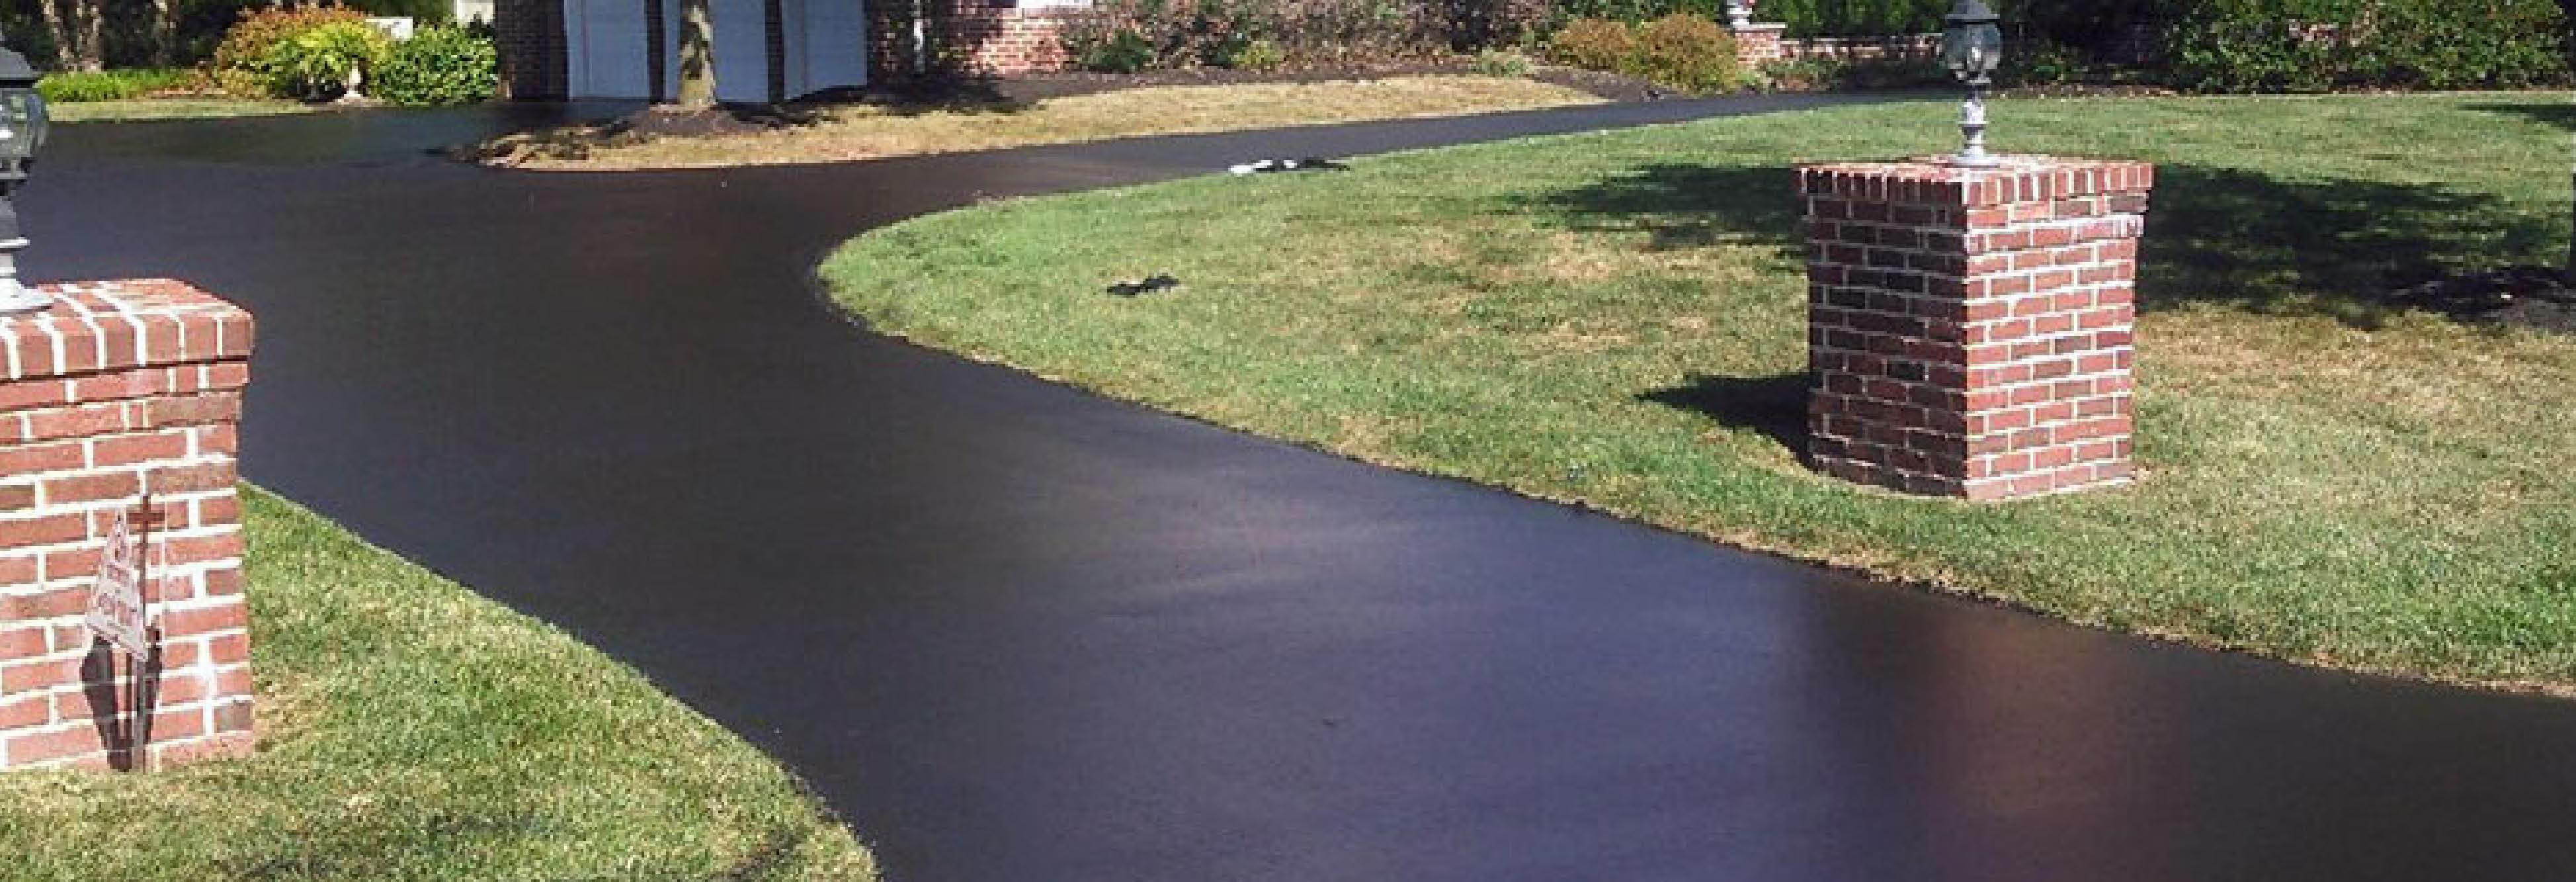 Pitch Black Seal Coating Logo in West Allis, WI